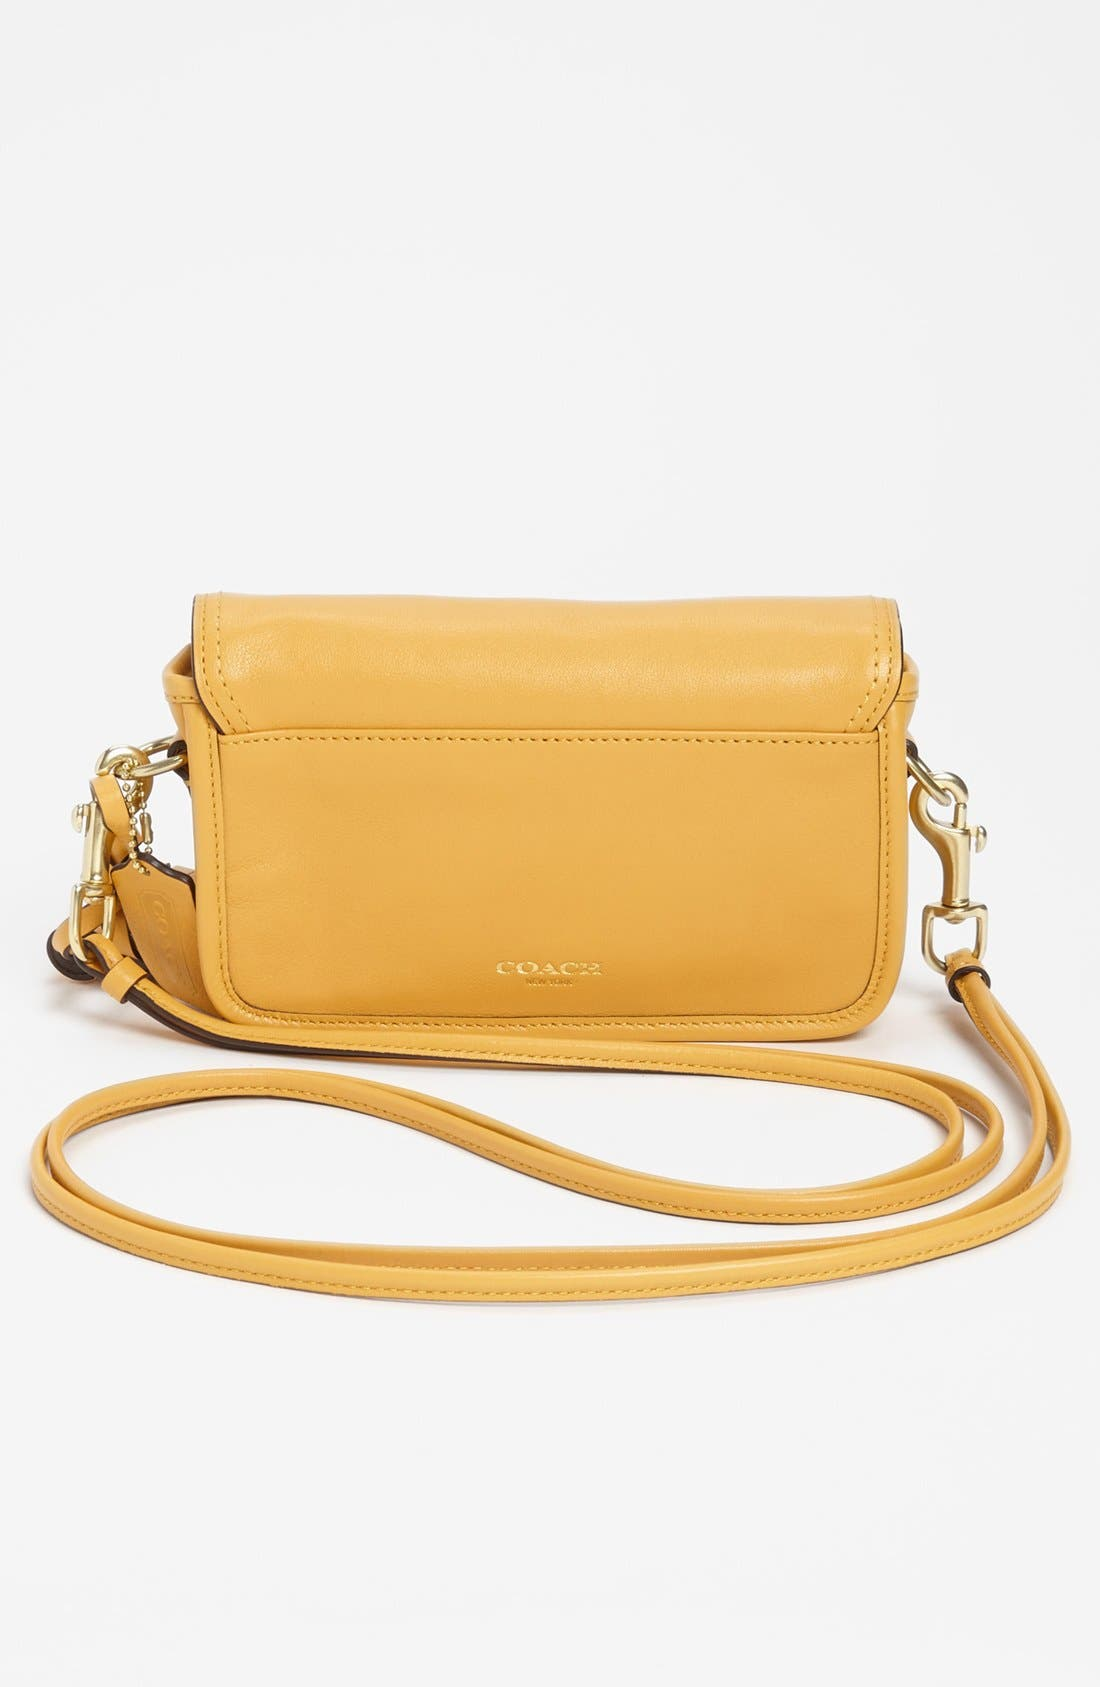 Leather Crossbody Bag,                             Alternate thumbnail 4, color,                             Mustard